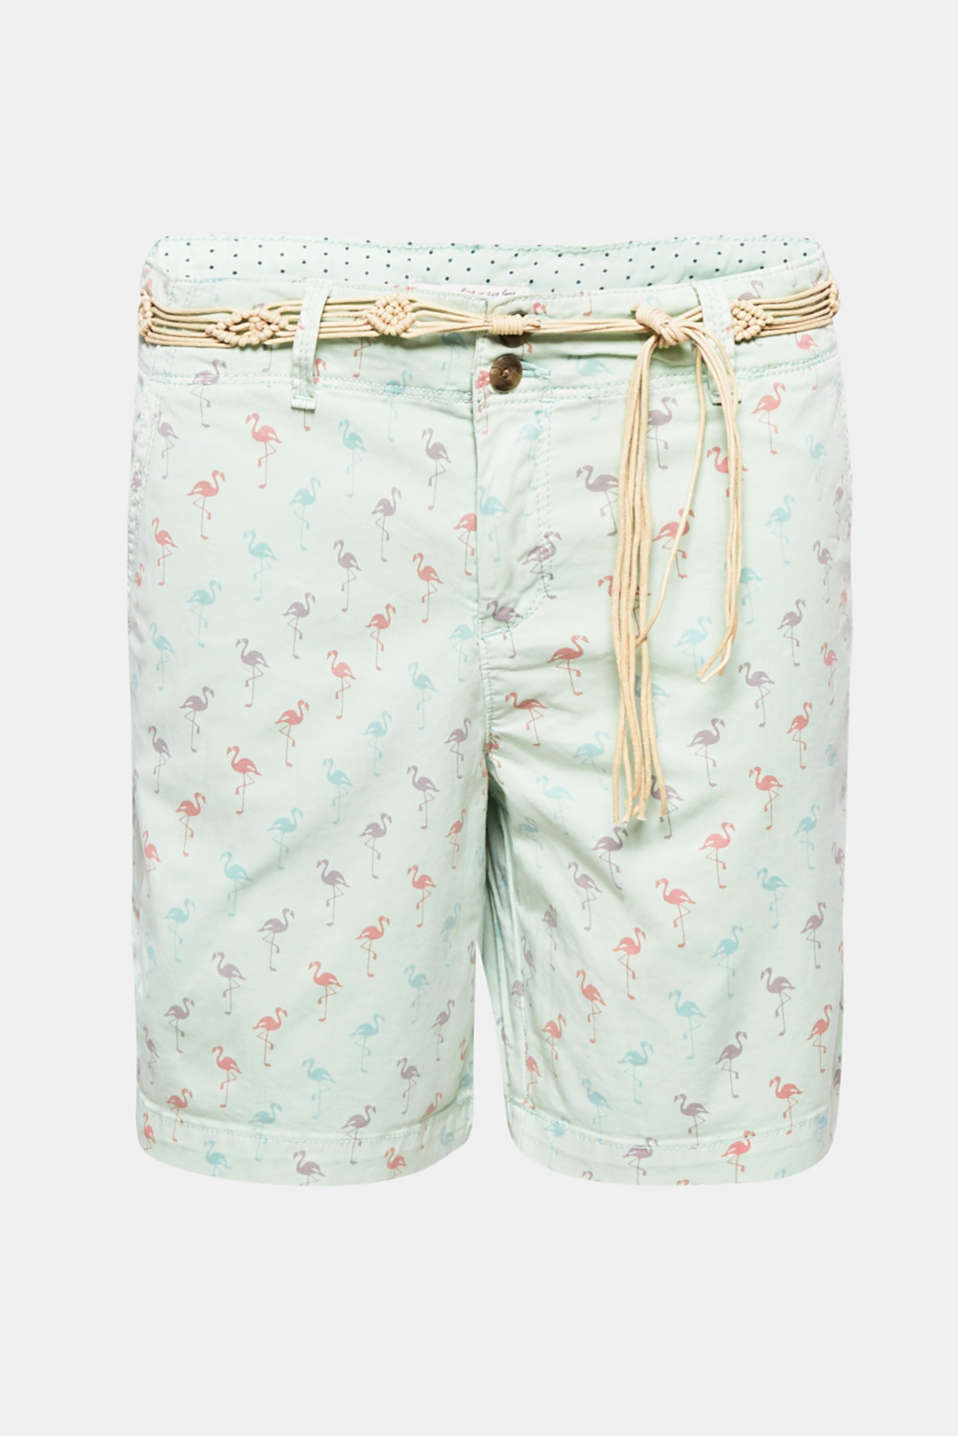 Summer, sun, sea: these soft washed cotton shorts with a colourful print and macramé belt are the perfect companion for warm summer days!